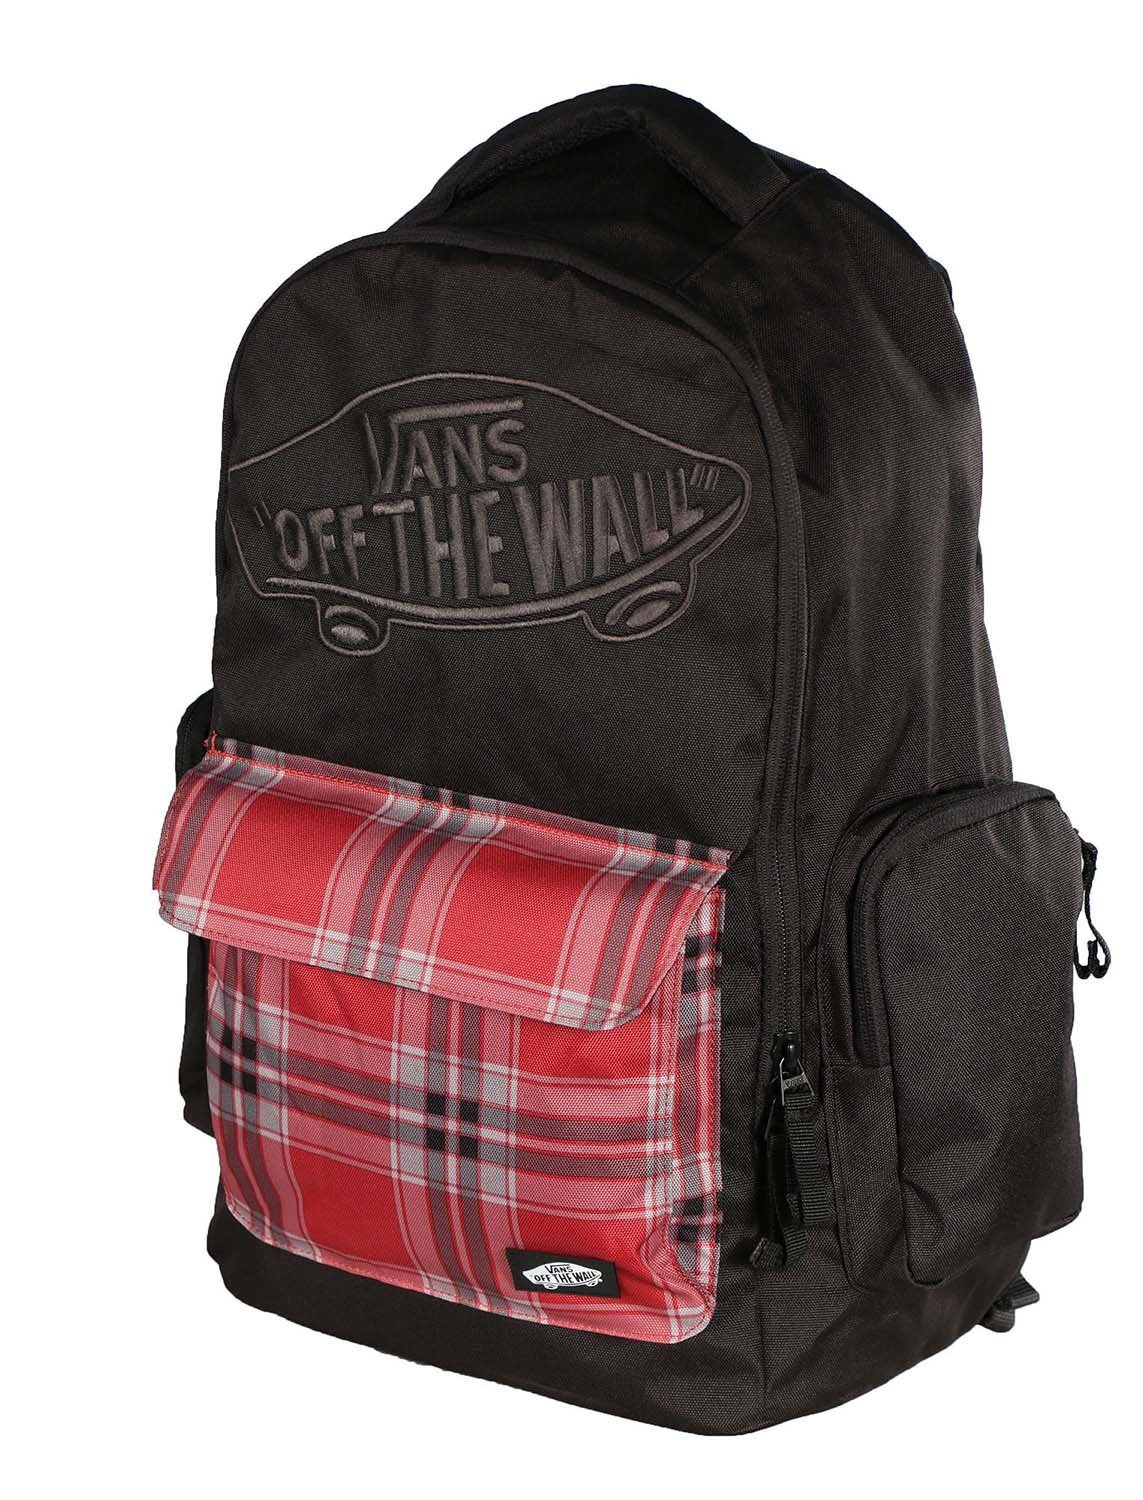 784e5f91bb Get Quotations · Vans Off The Wall Underhill 2 Backpack-Black Red